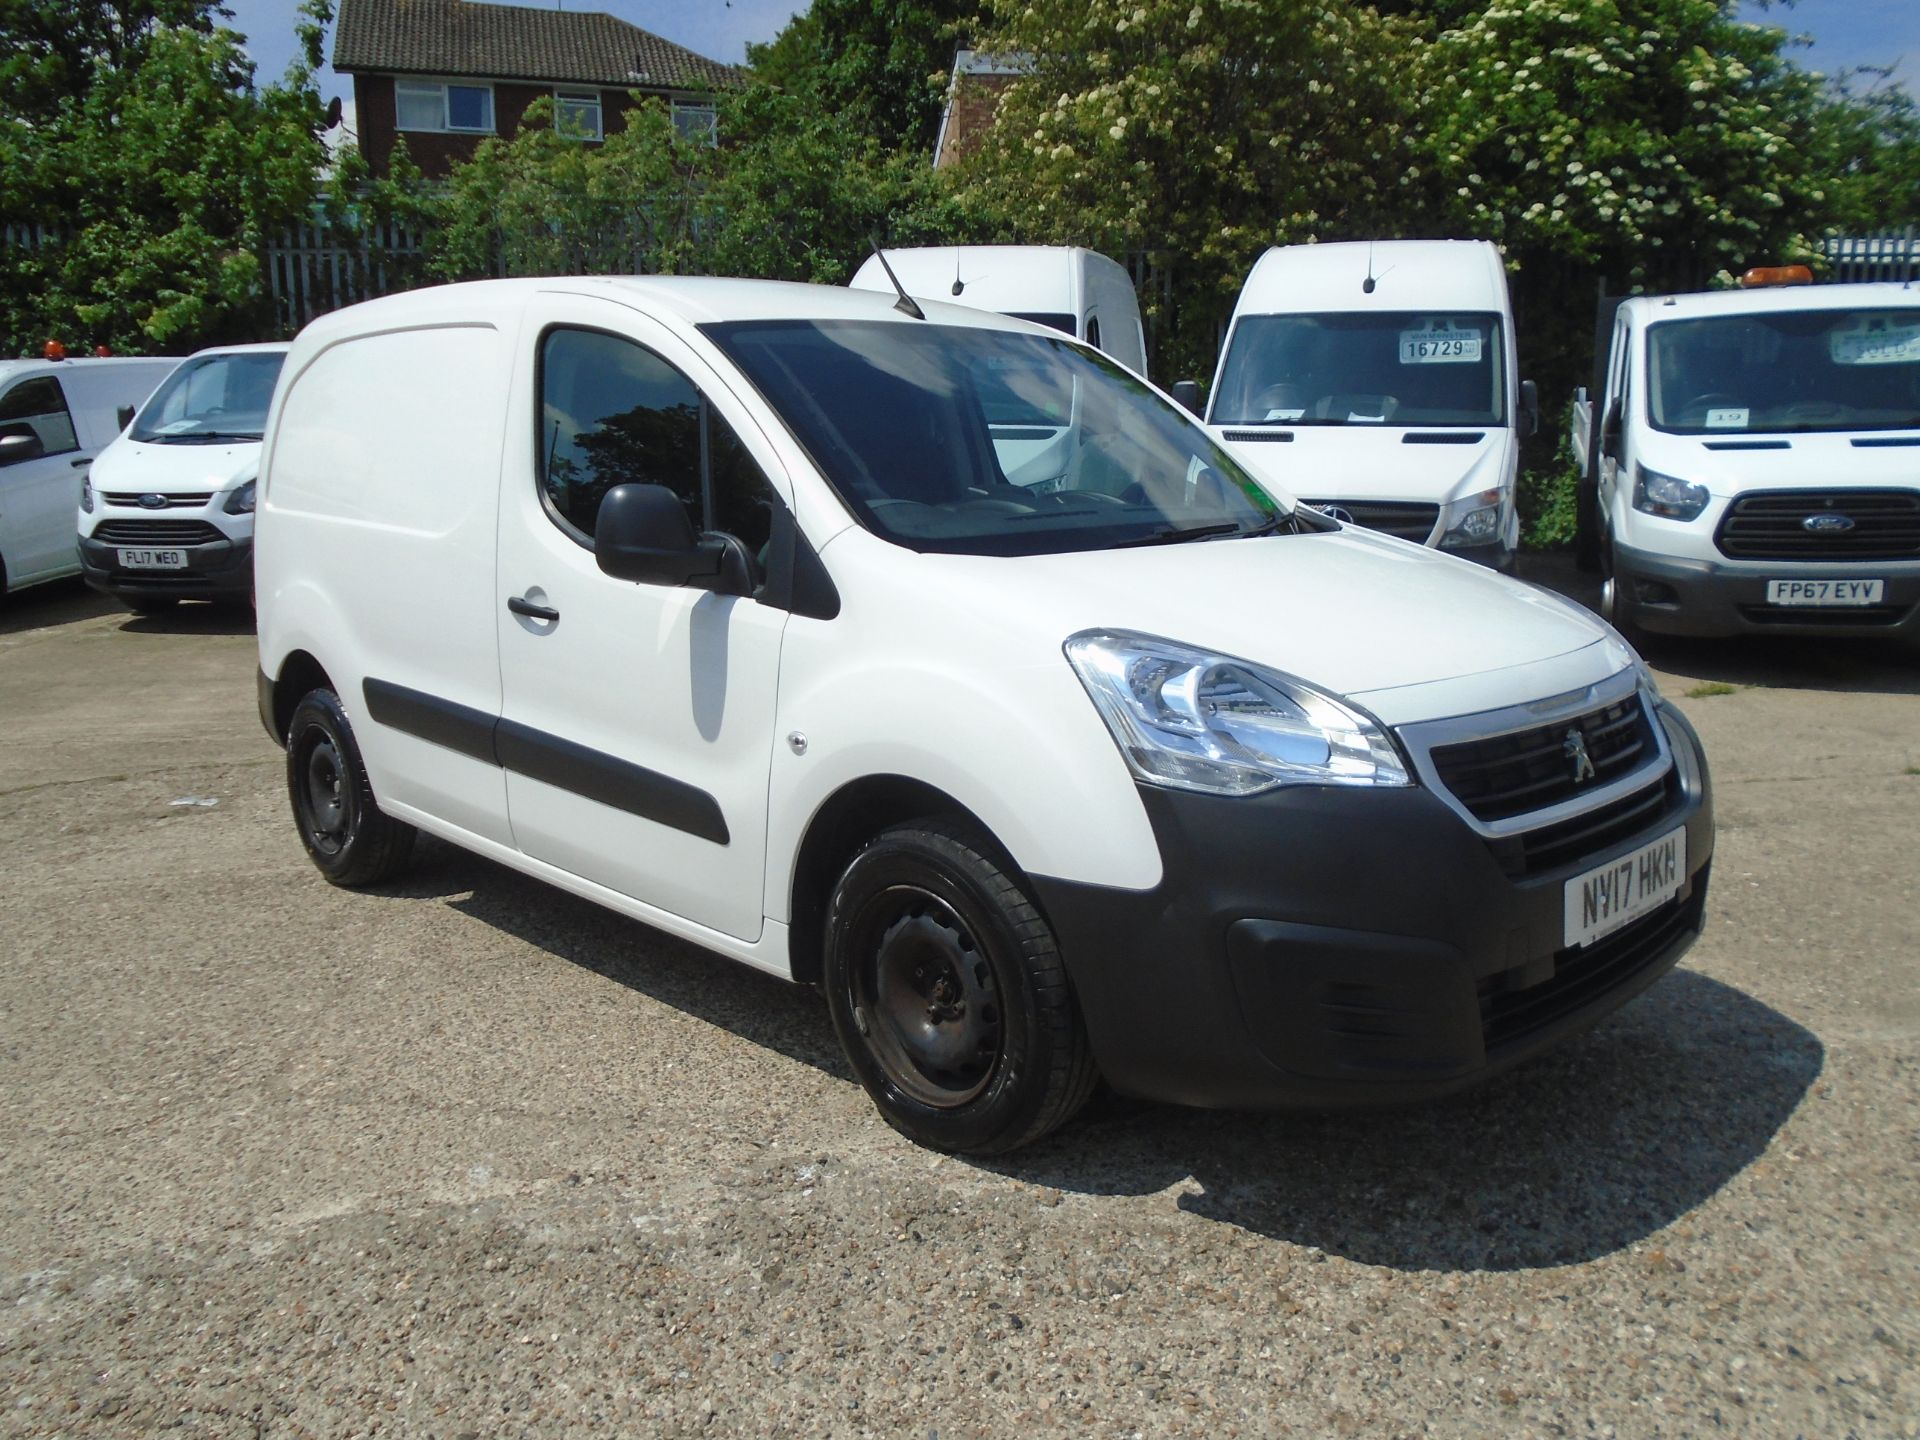 2017 Peugeot Partner 850 1.6 Bluehdi 100 Professional Van [Non Ss] *SPEED LIMITED 70MPH* (NV17HKN) Image 1